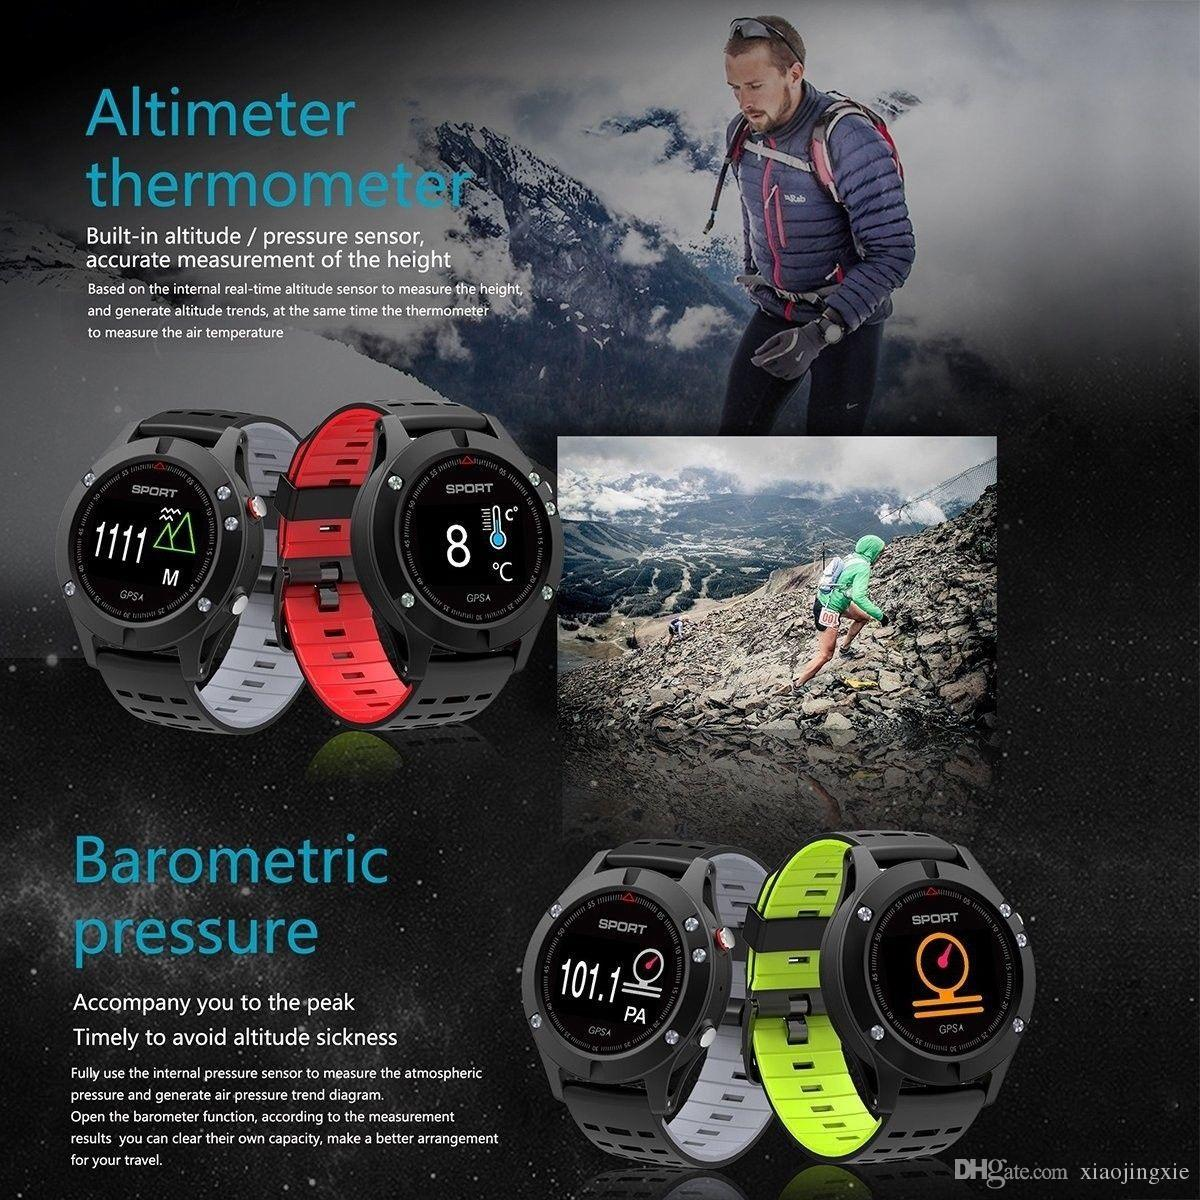 No.1 F5 Smart Watch GPS Bluetooth 4.2 IP67 Outdoors Activity Fitness Tracker Altimeter Thermometer for IOS Android Phone Free Strap